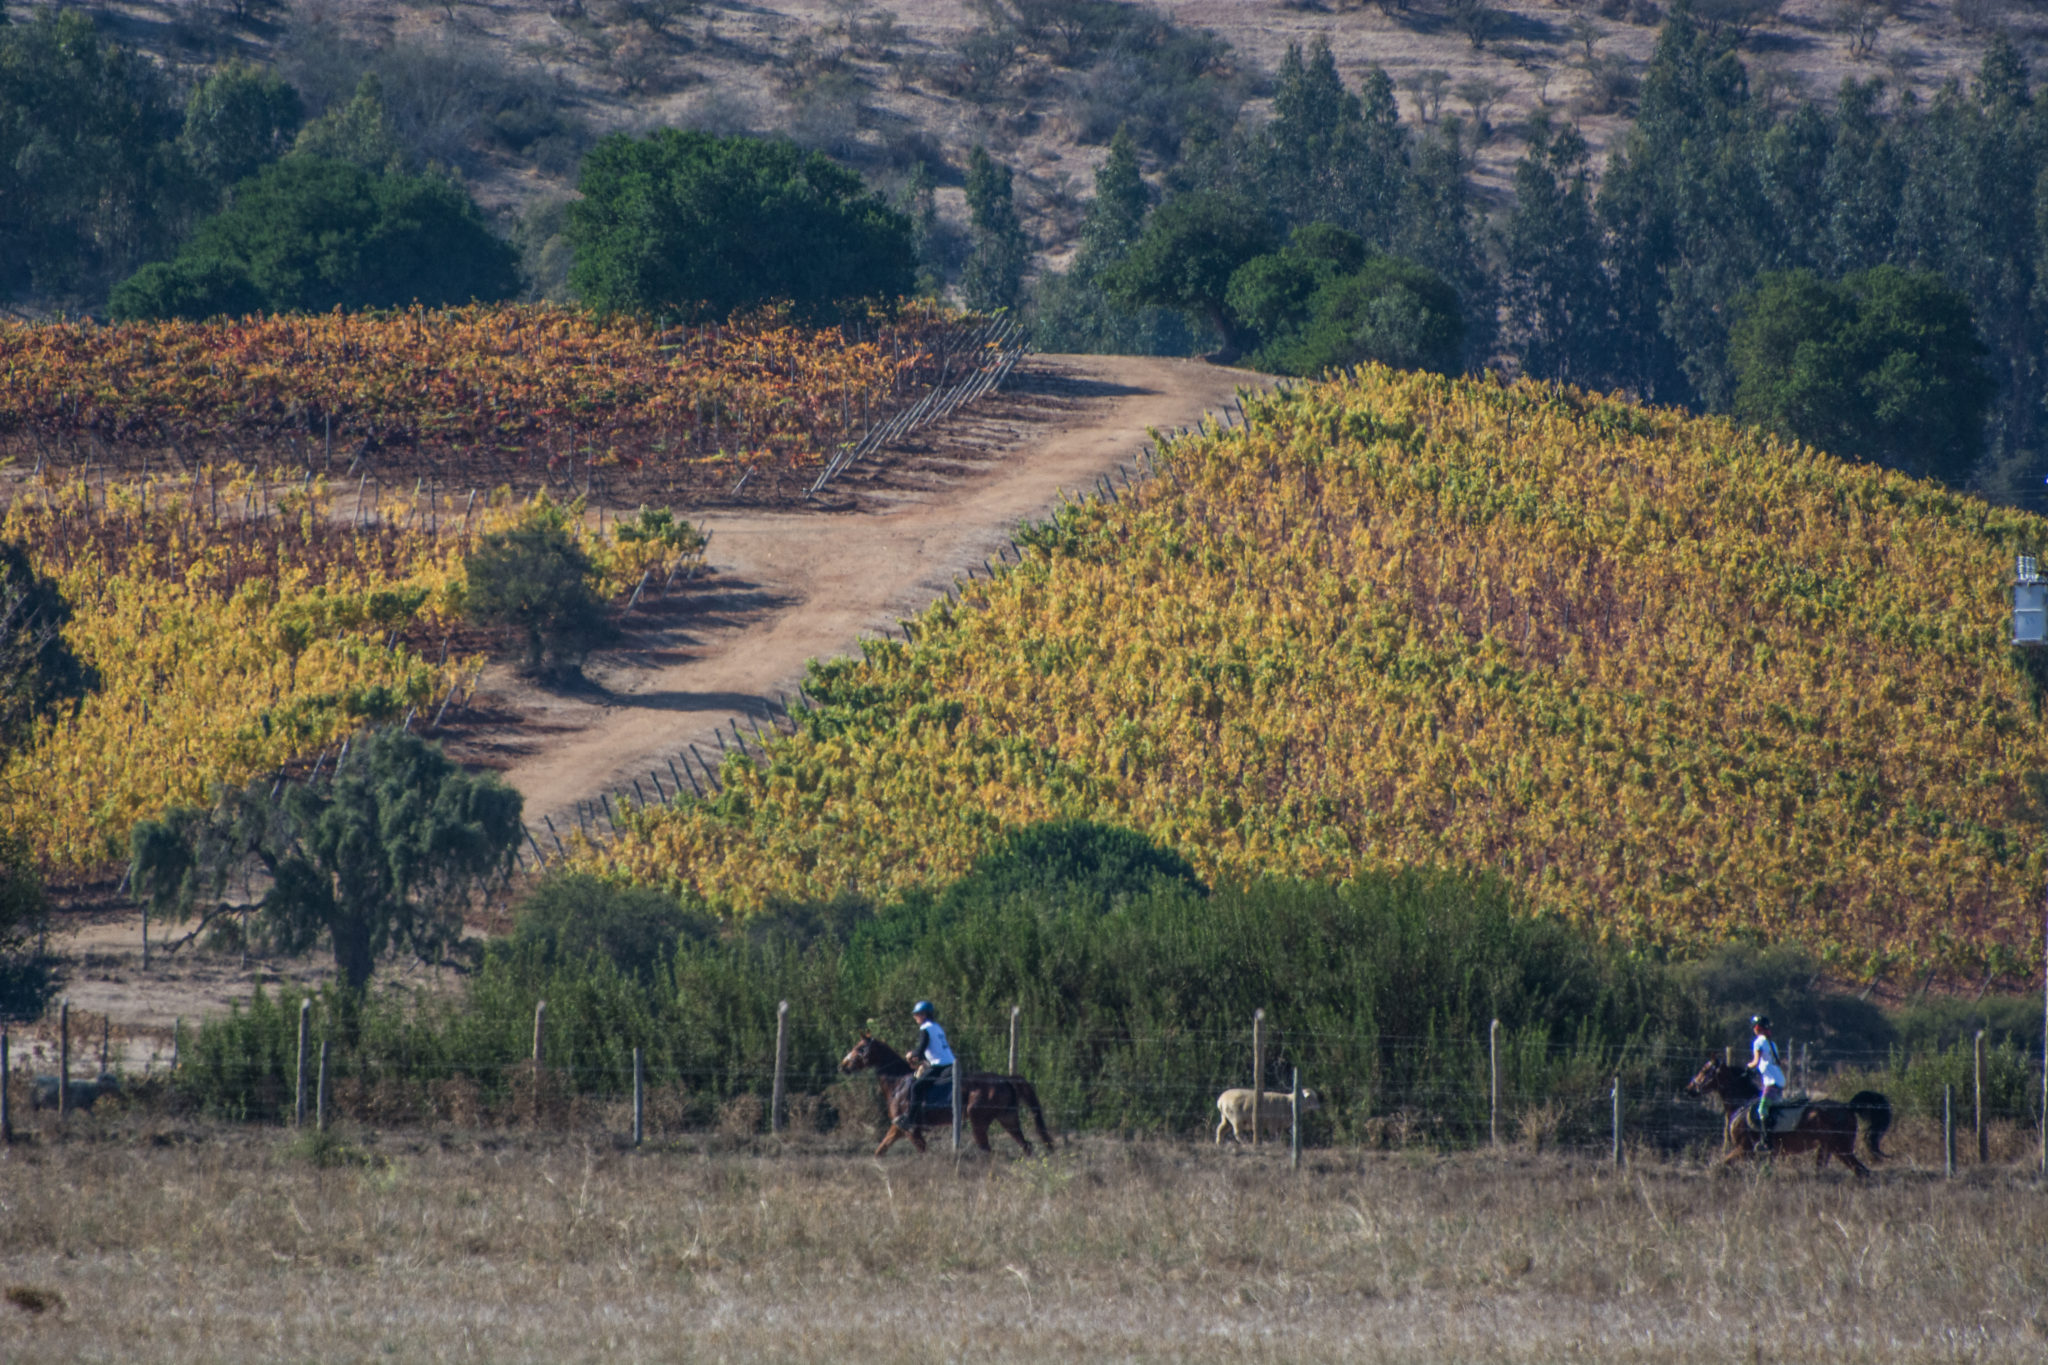 Lagunillas – Matetic, Chile. Riders going through the fields